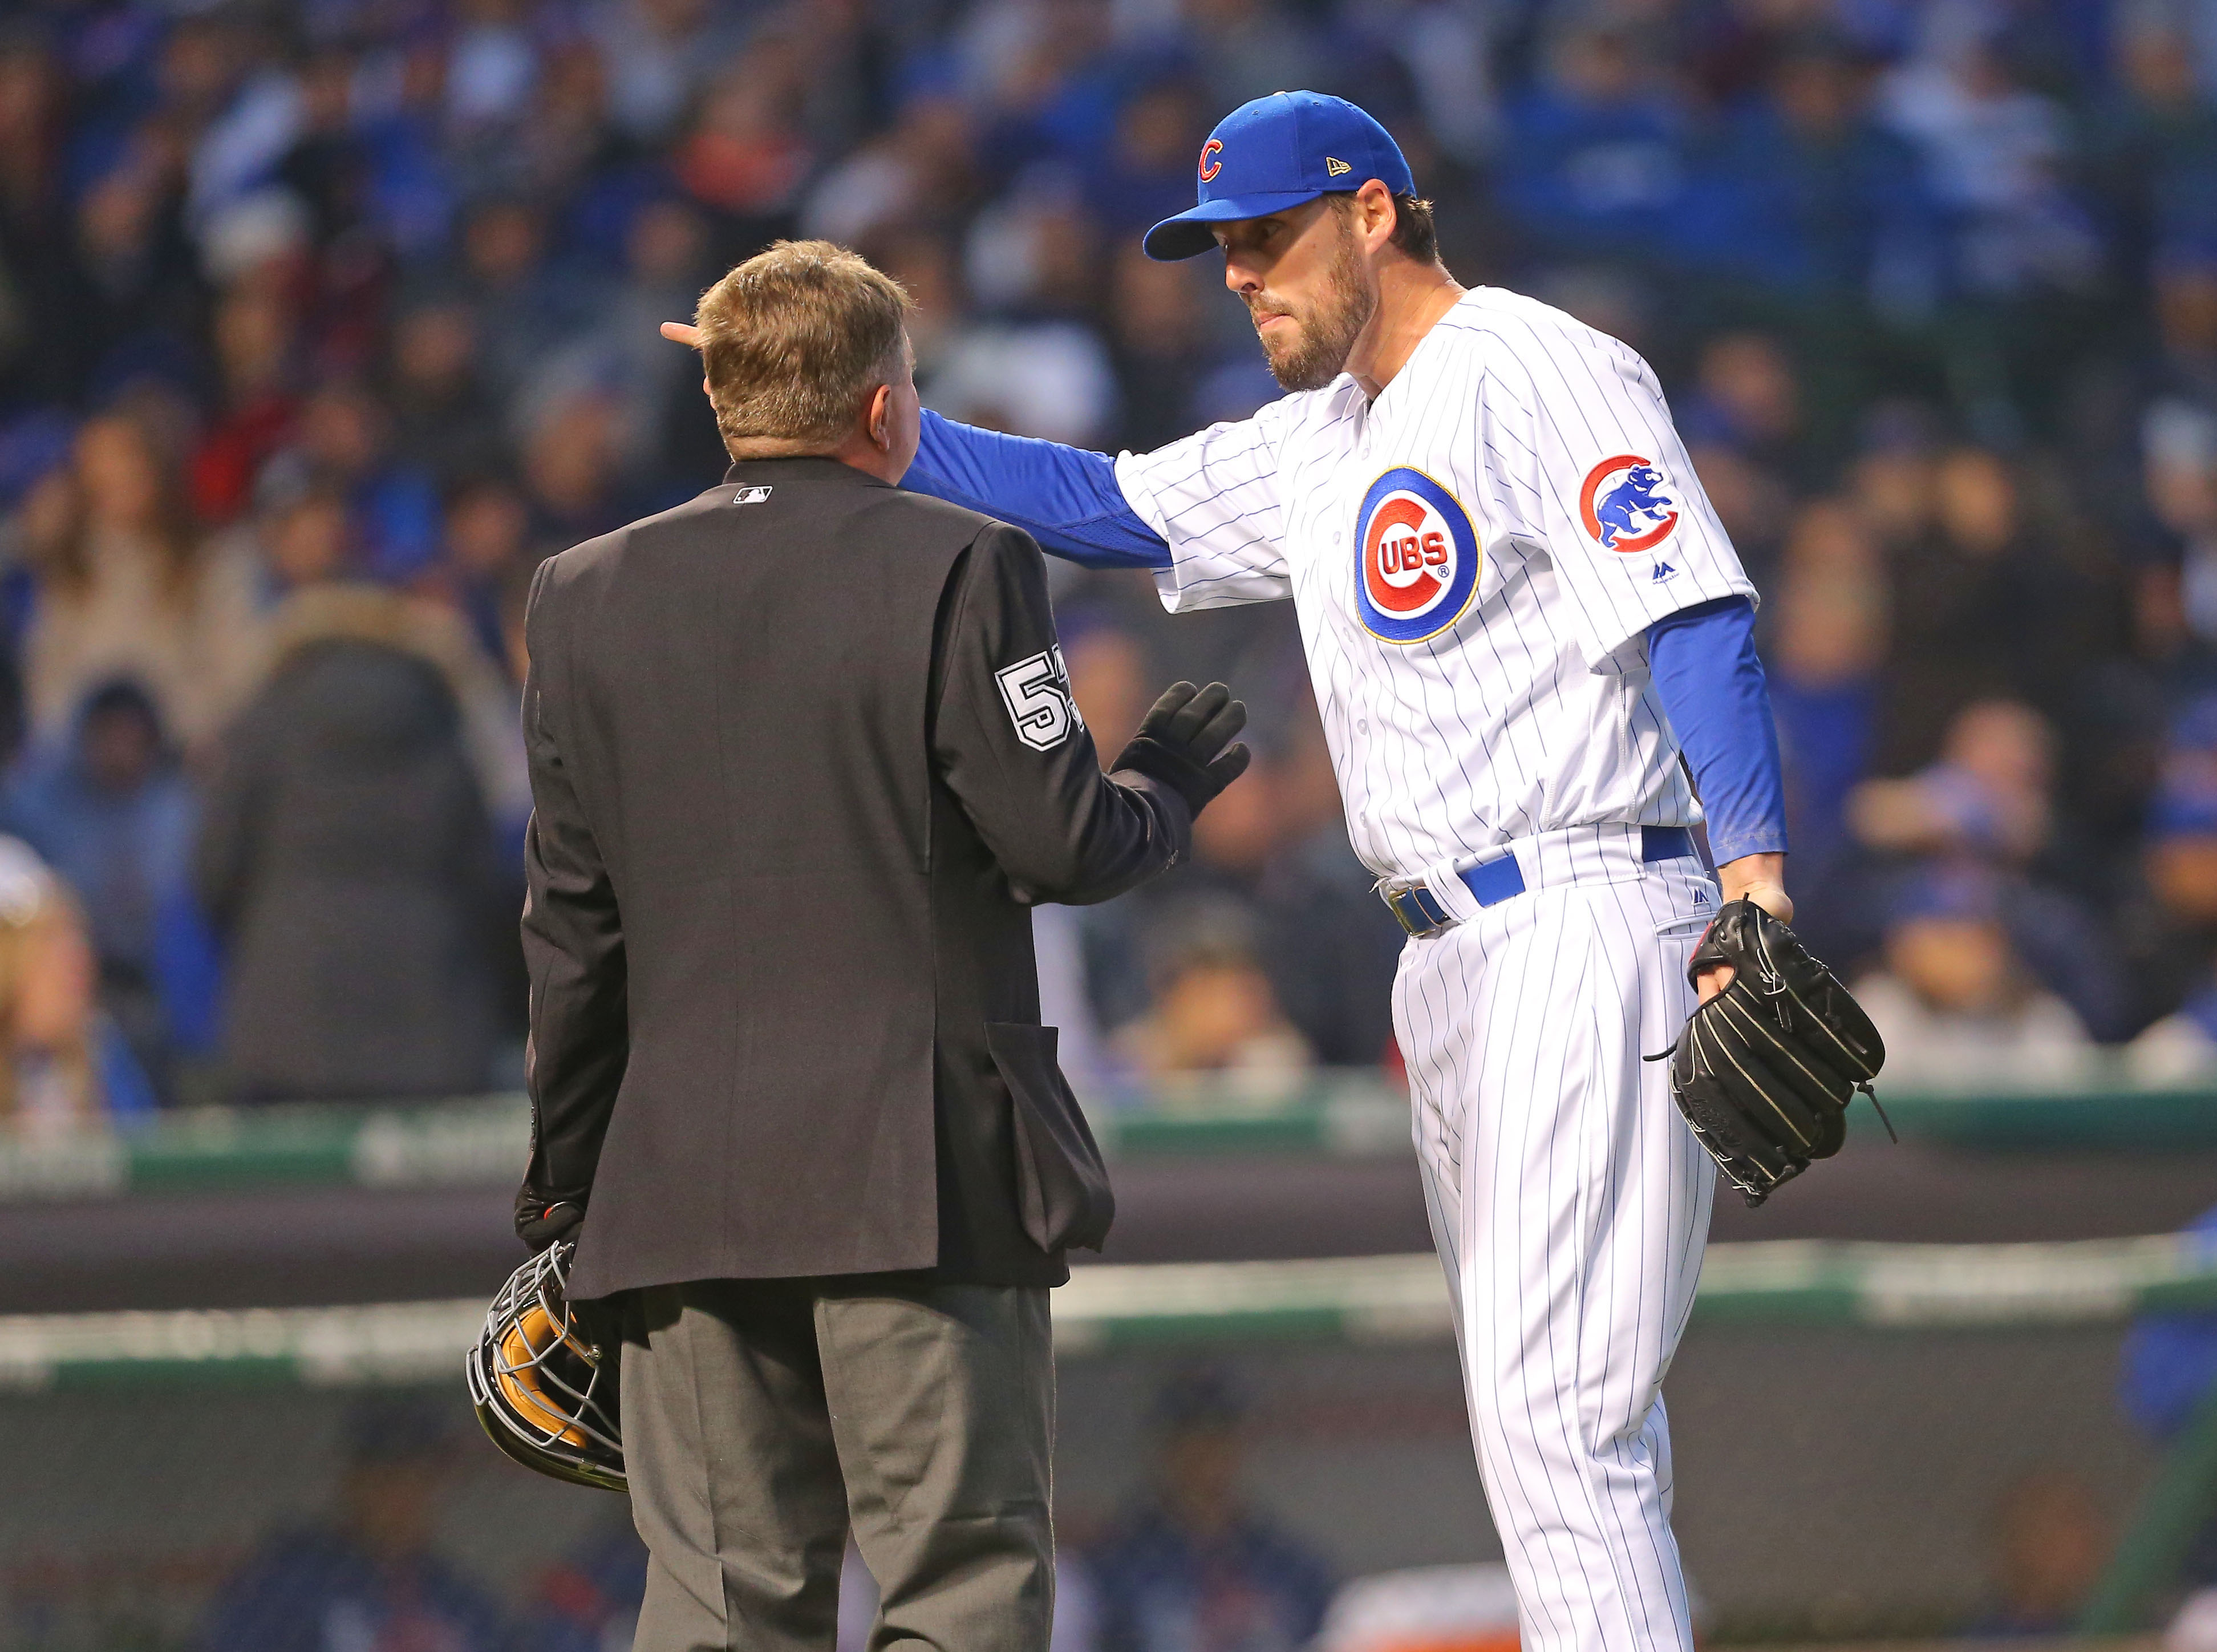 10008960-mlb-los-angeles-dodgers-at-chicago-cubs